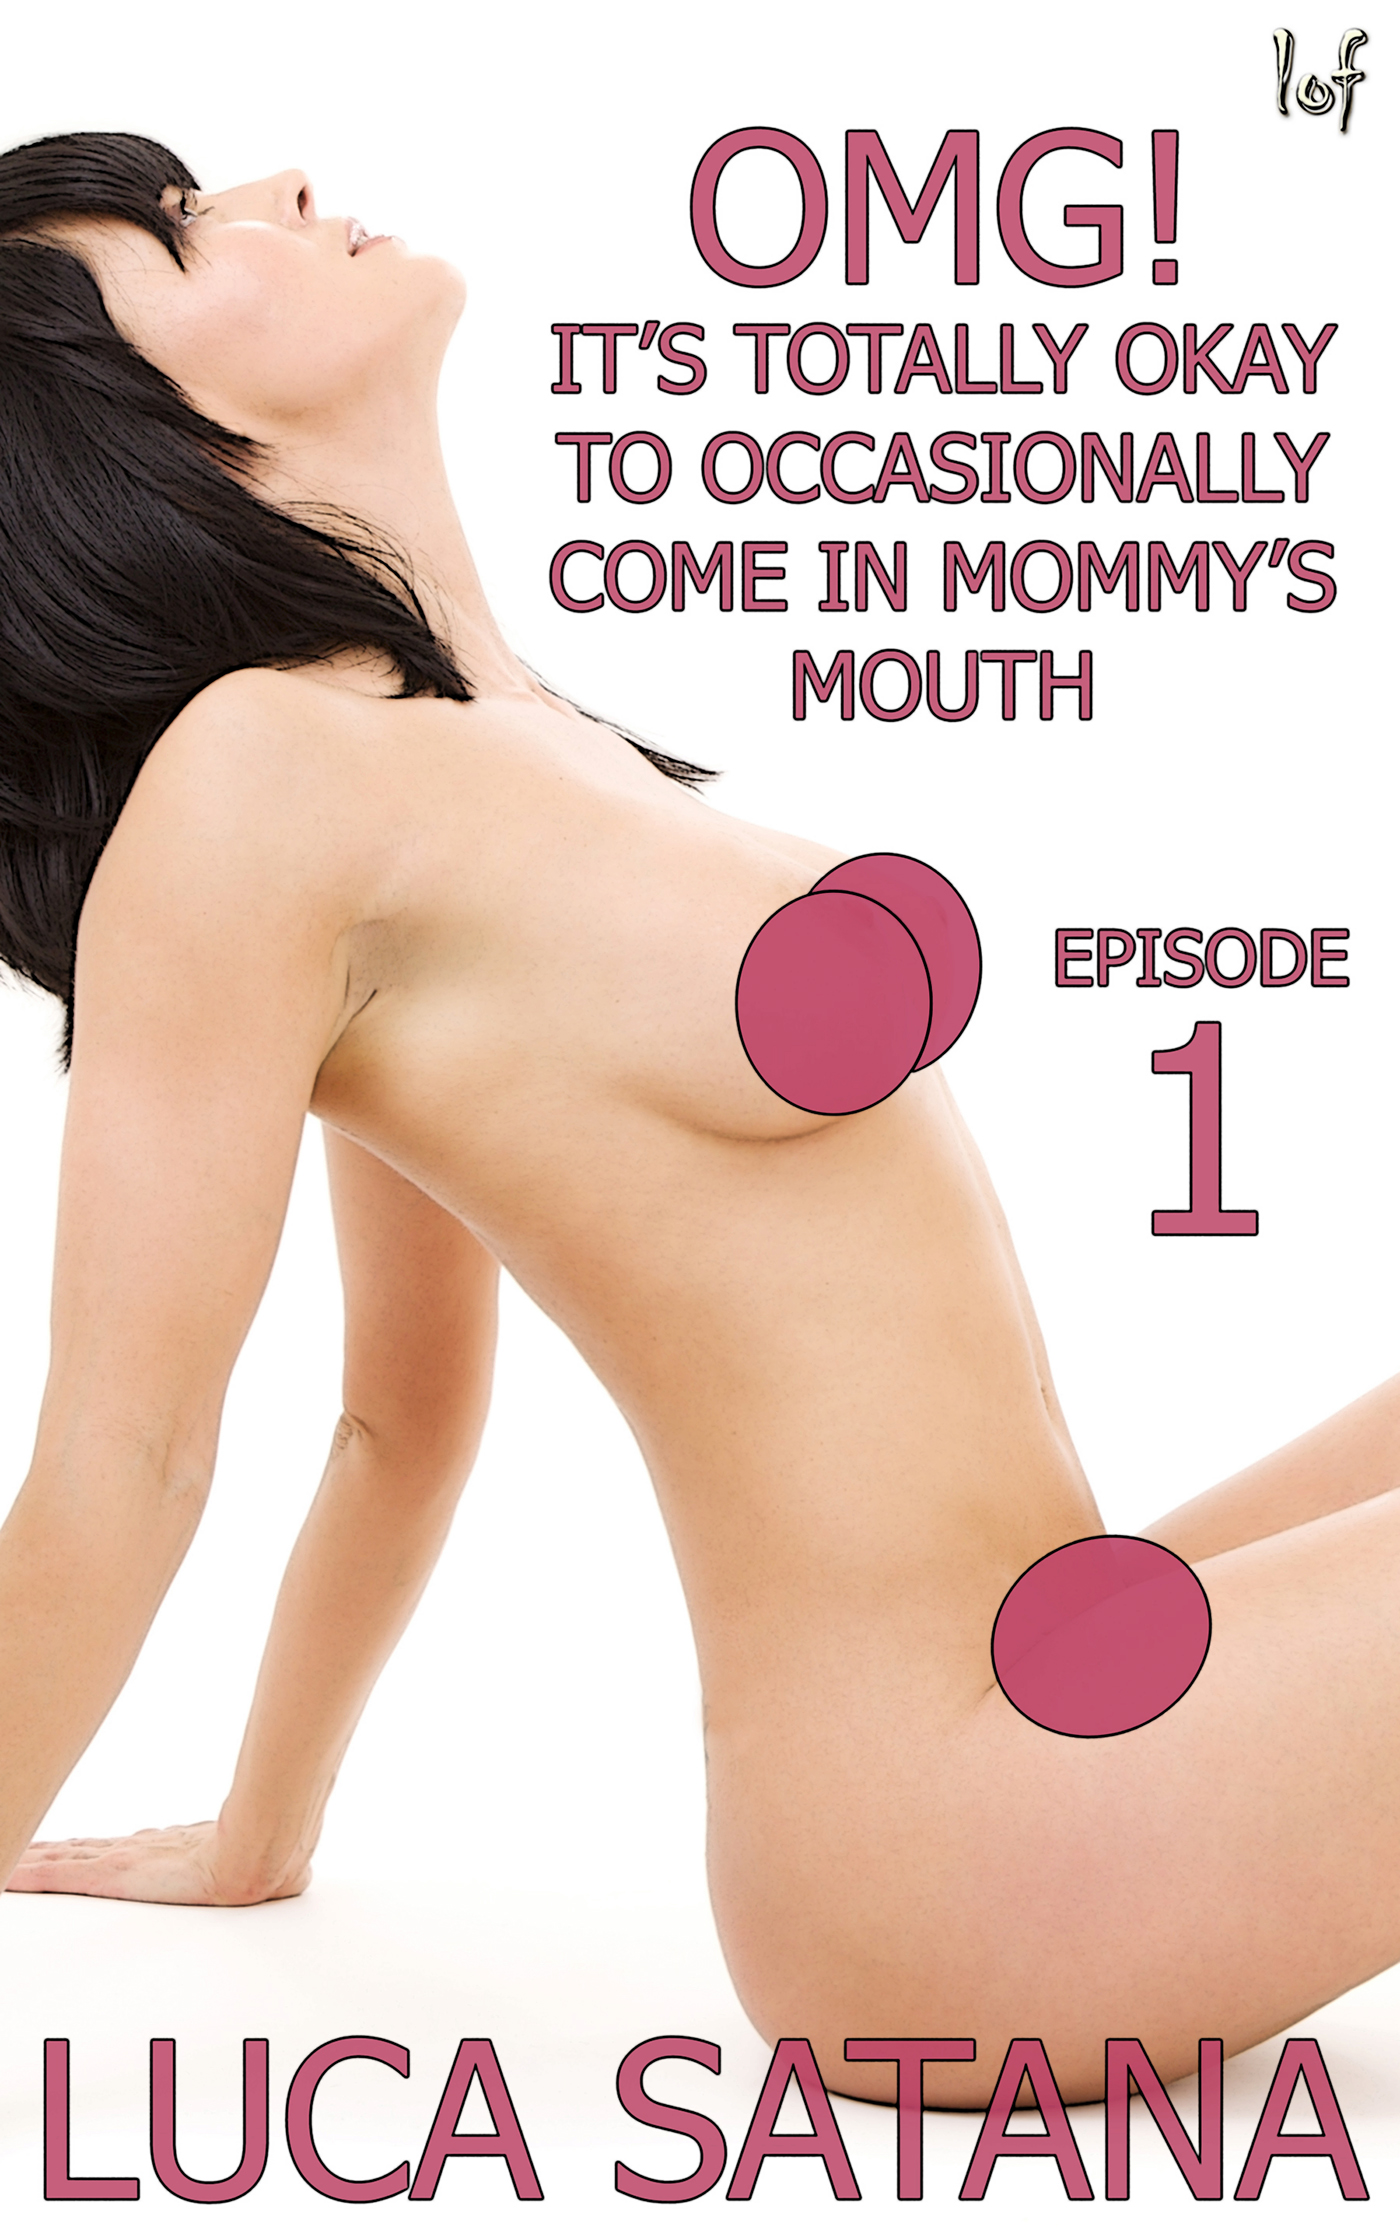 OMG It's Totally Okay To Come In Mommy's Mouth: Episode 1